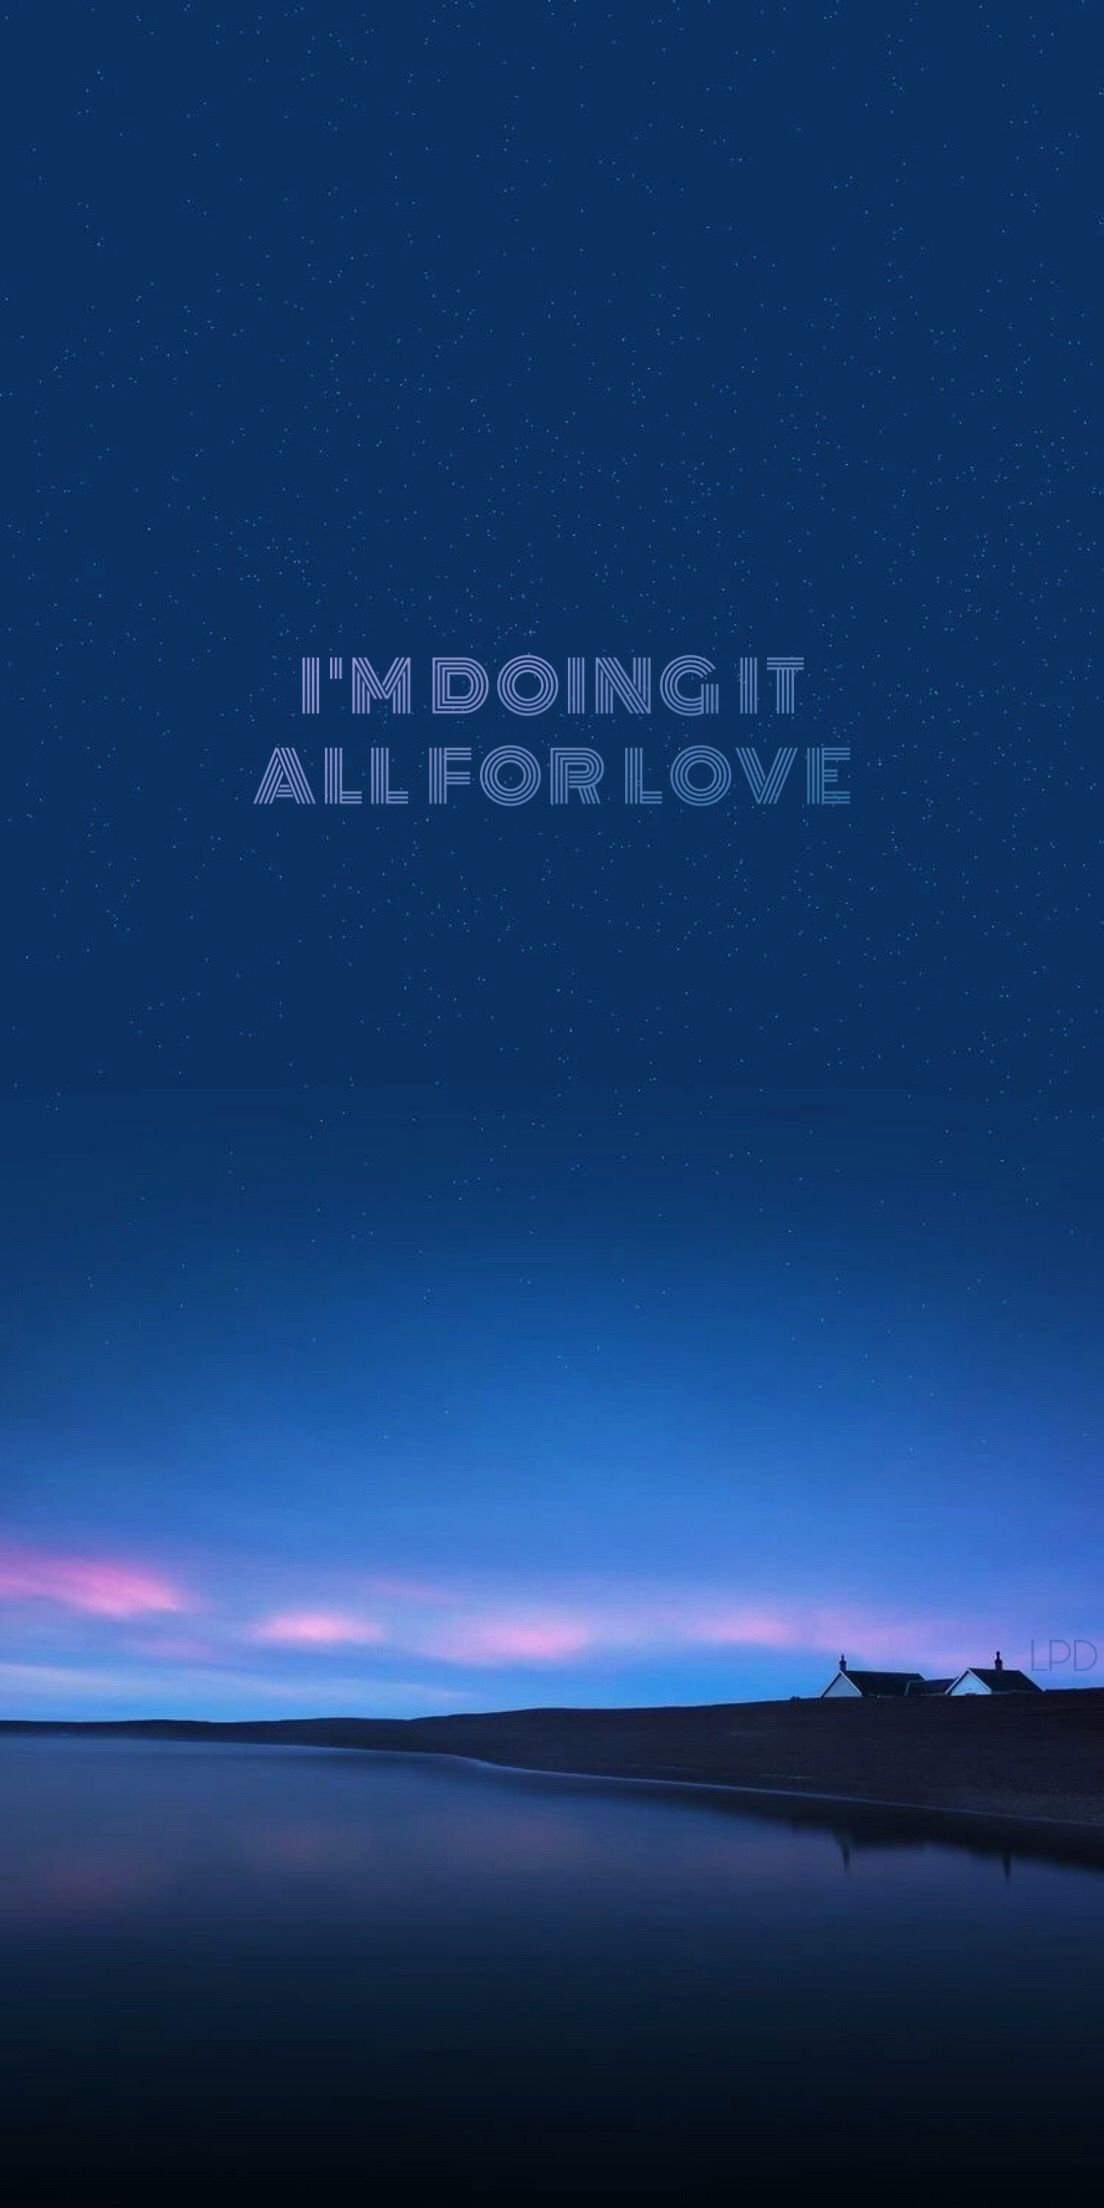 All For Us By Labrinth And Zendaya Tumblr Backgrounds Iconic Wallpaper Aesthetic Wallpapers